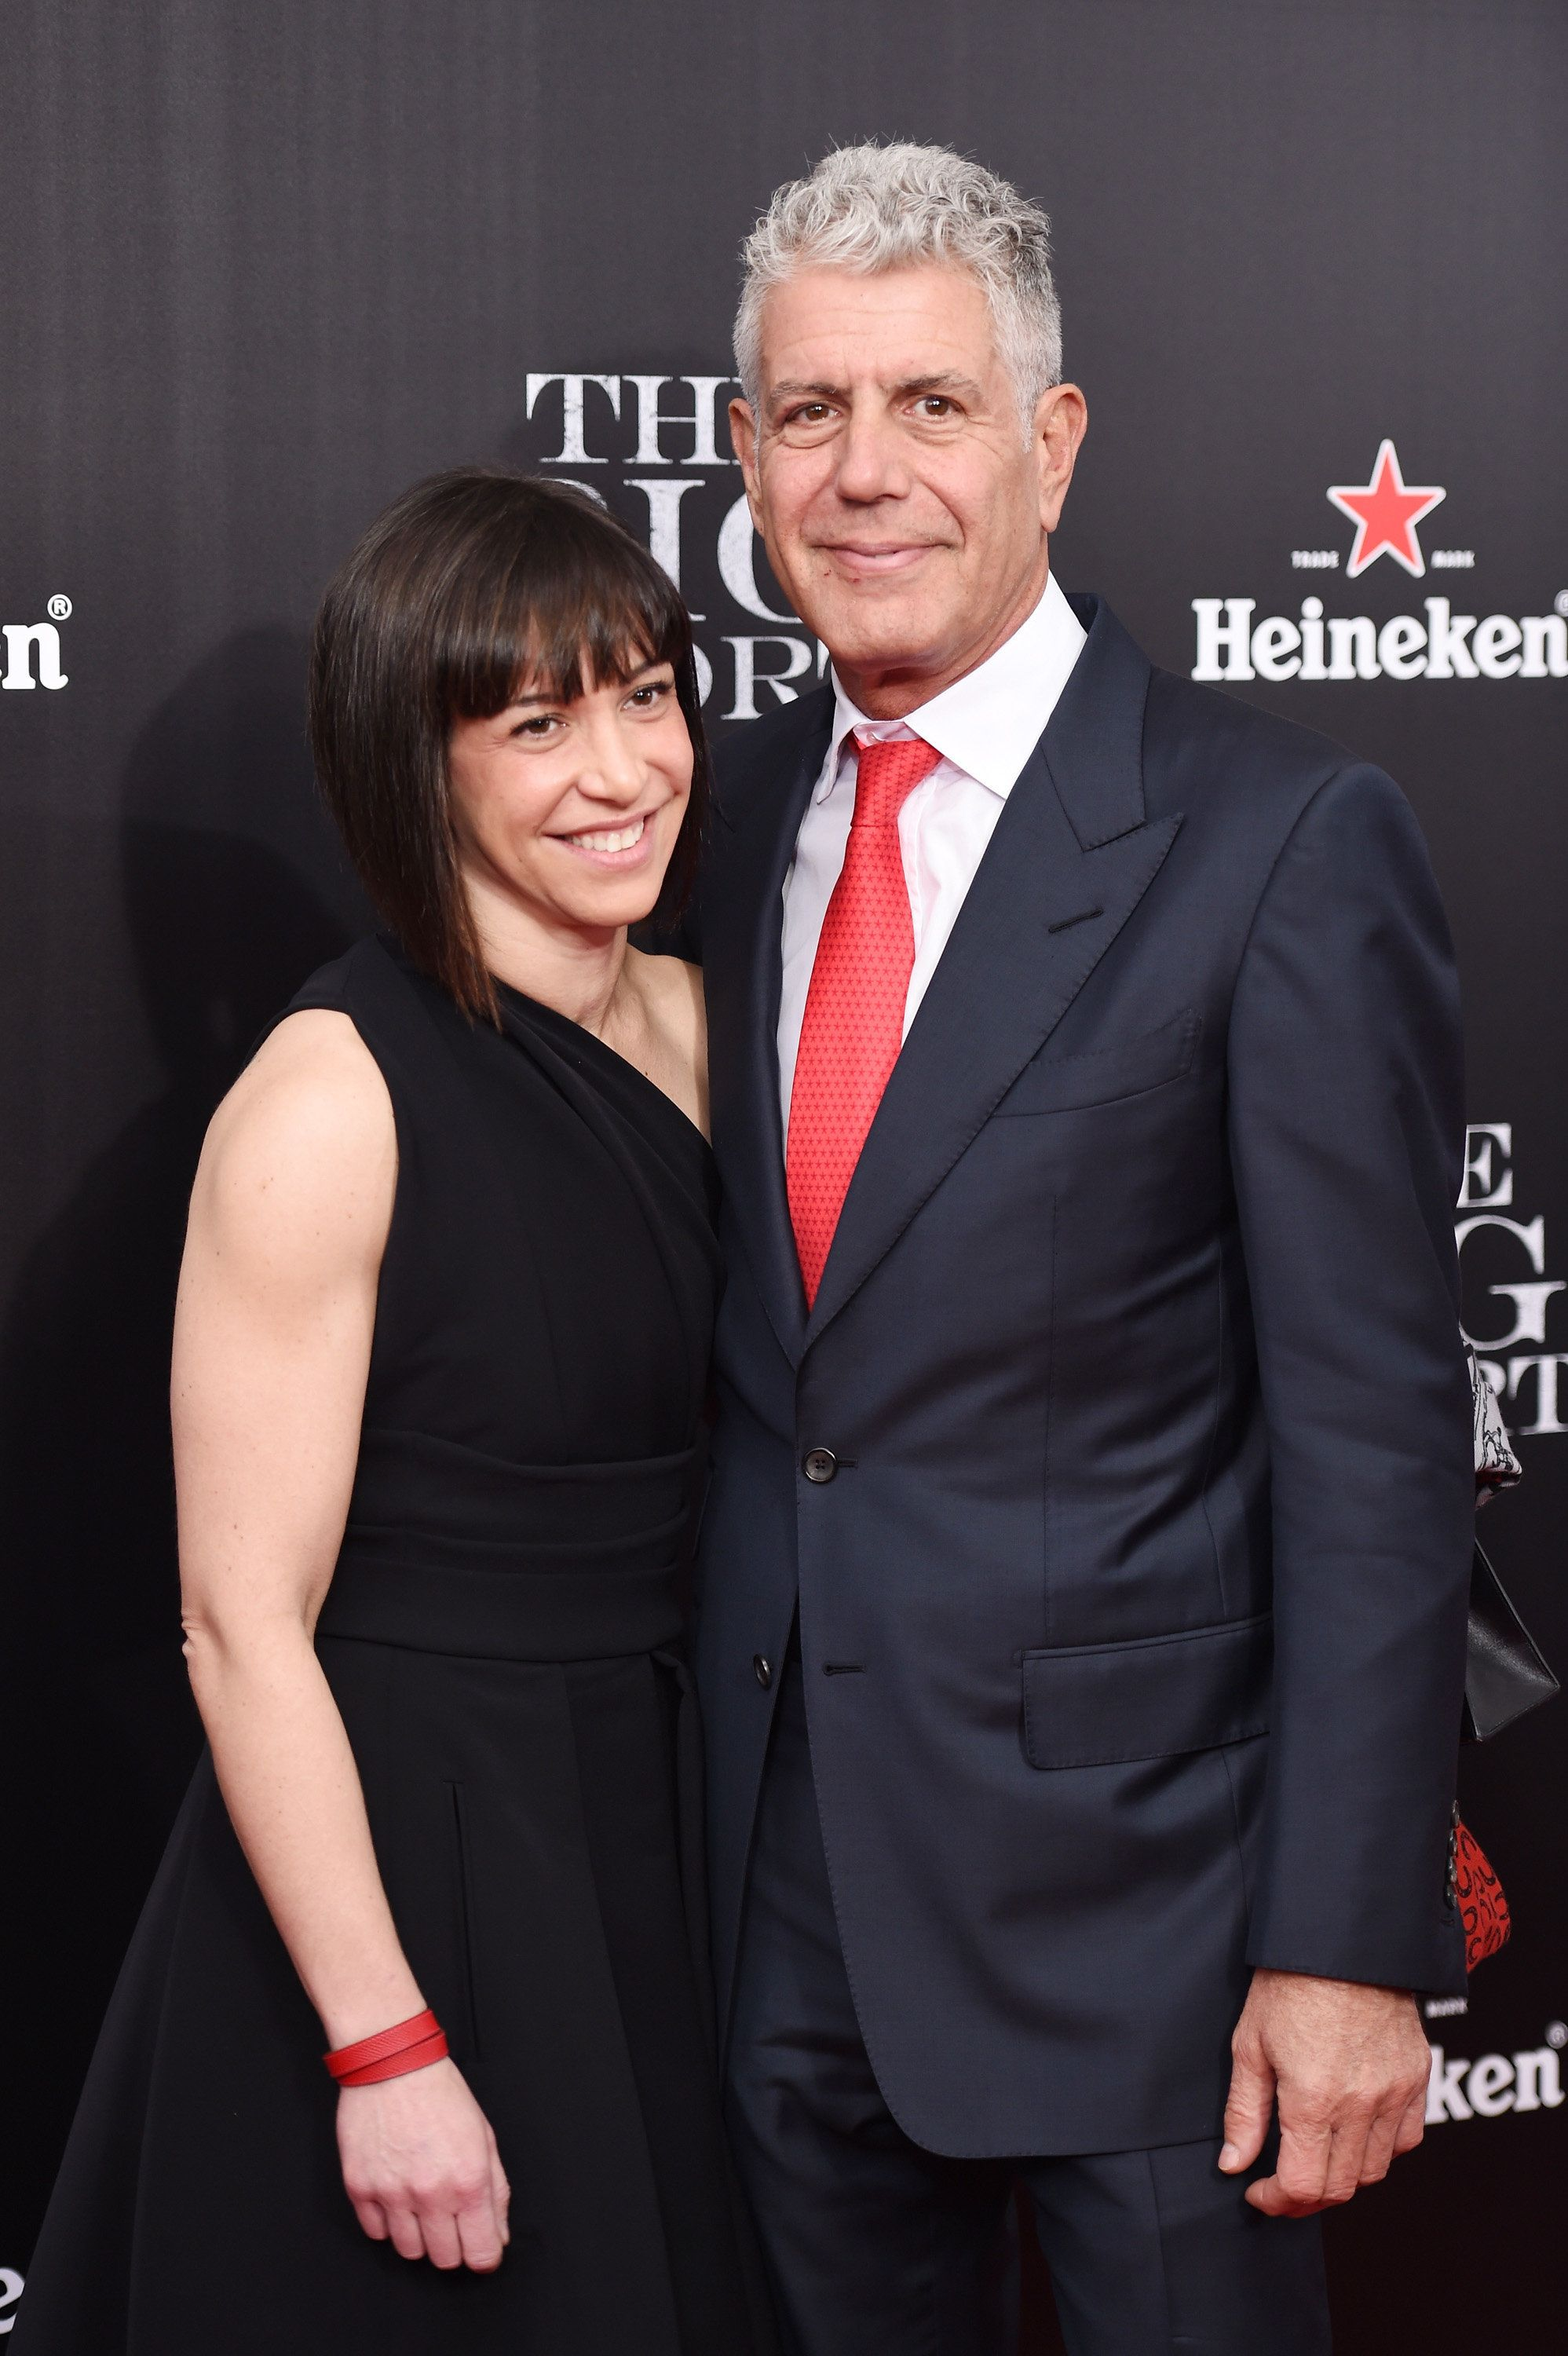 NEW YORK, NY - NOVEMBER 23:  Ottavia Busia and chef Anthony Bourdain attend the premiere of 'The Big Short' at Ziegfeld Theatre on November 23, 2015 in New York City.  (Photo by Dimitrios Kambouris/Getty Images)